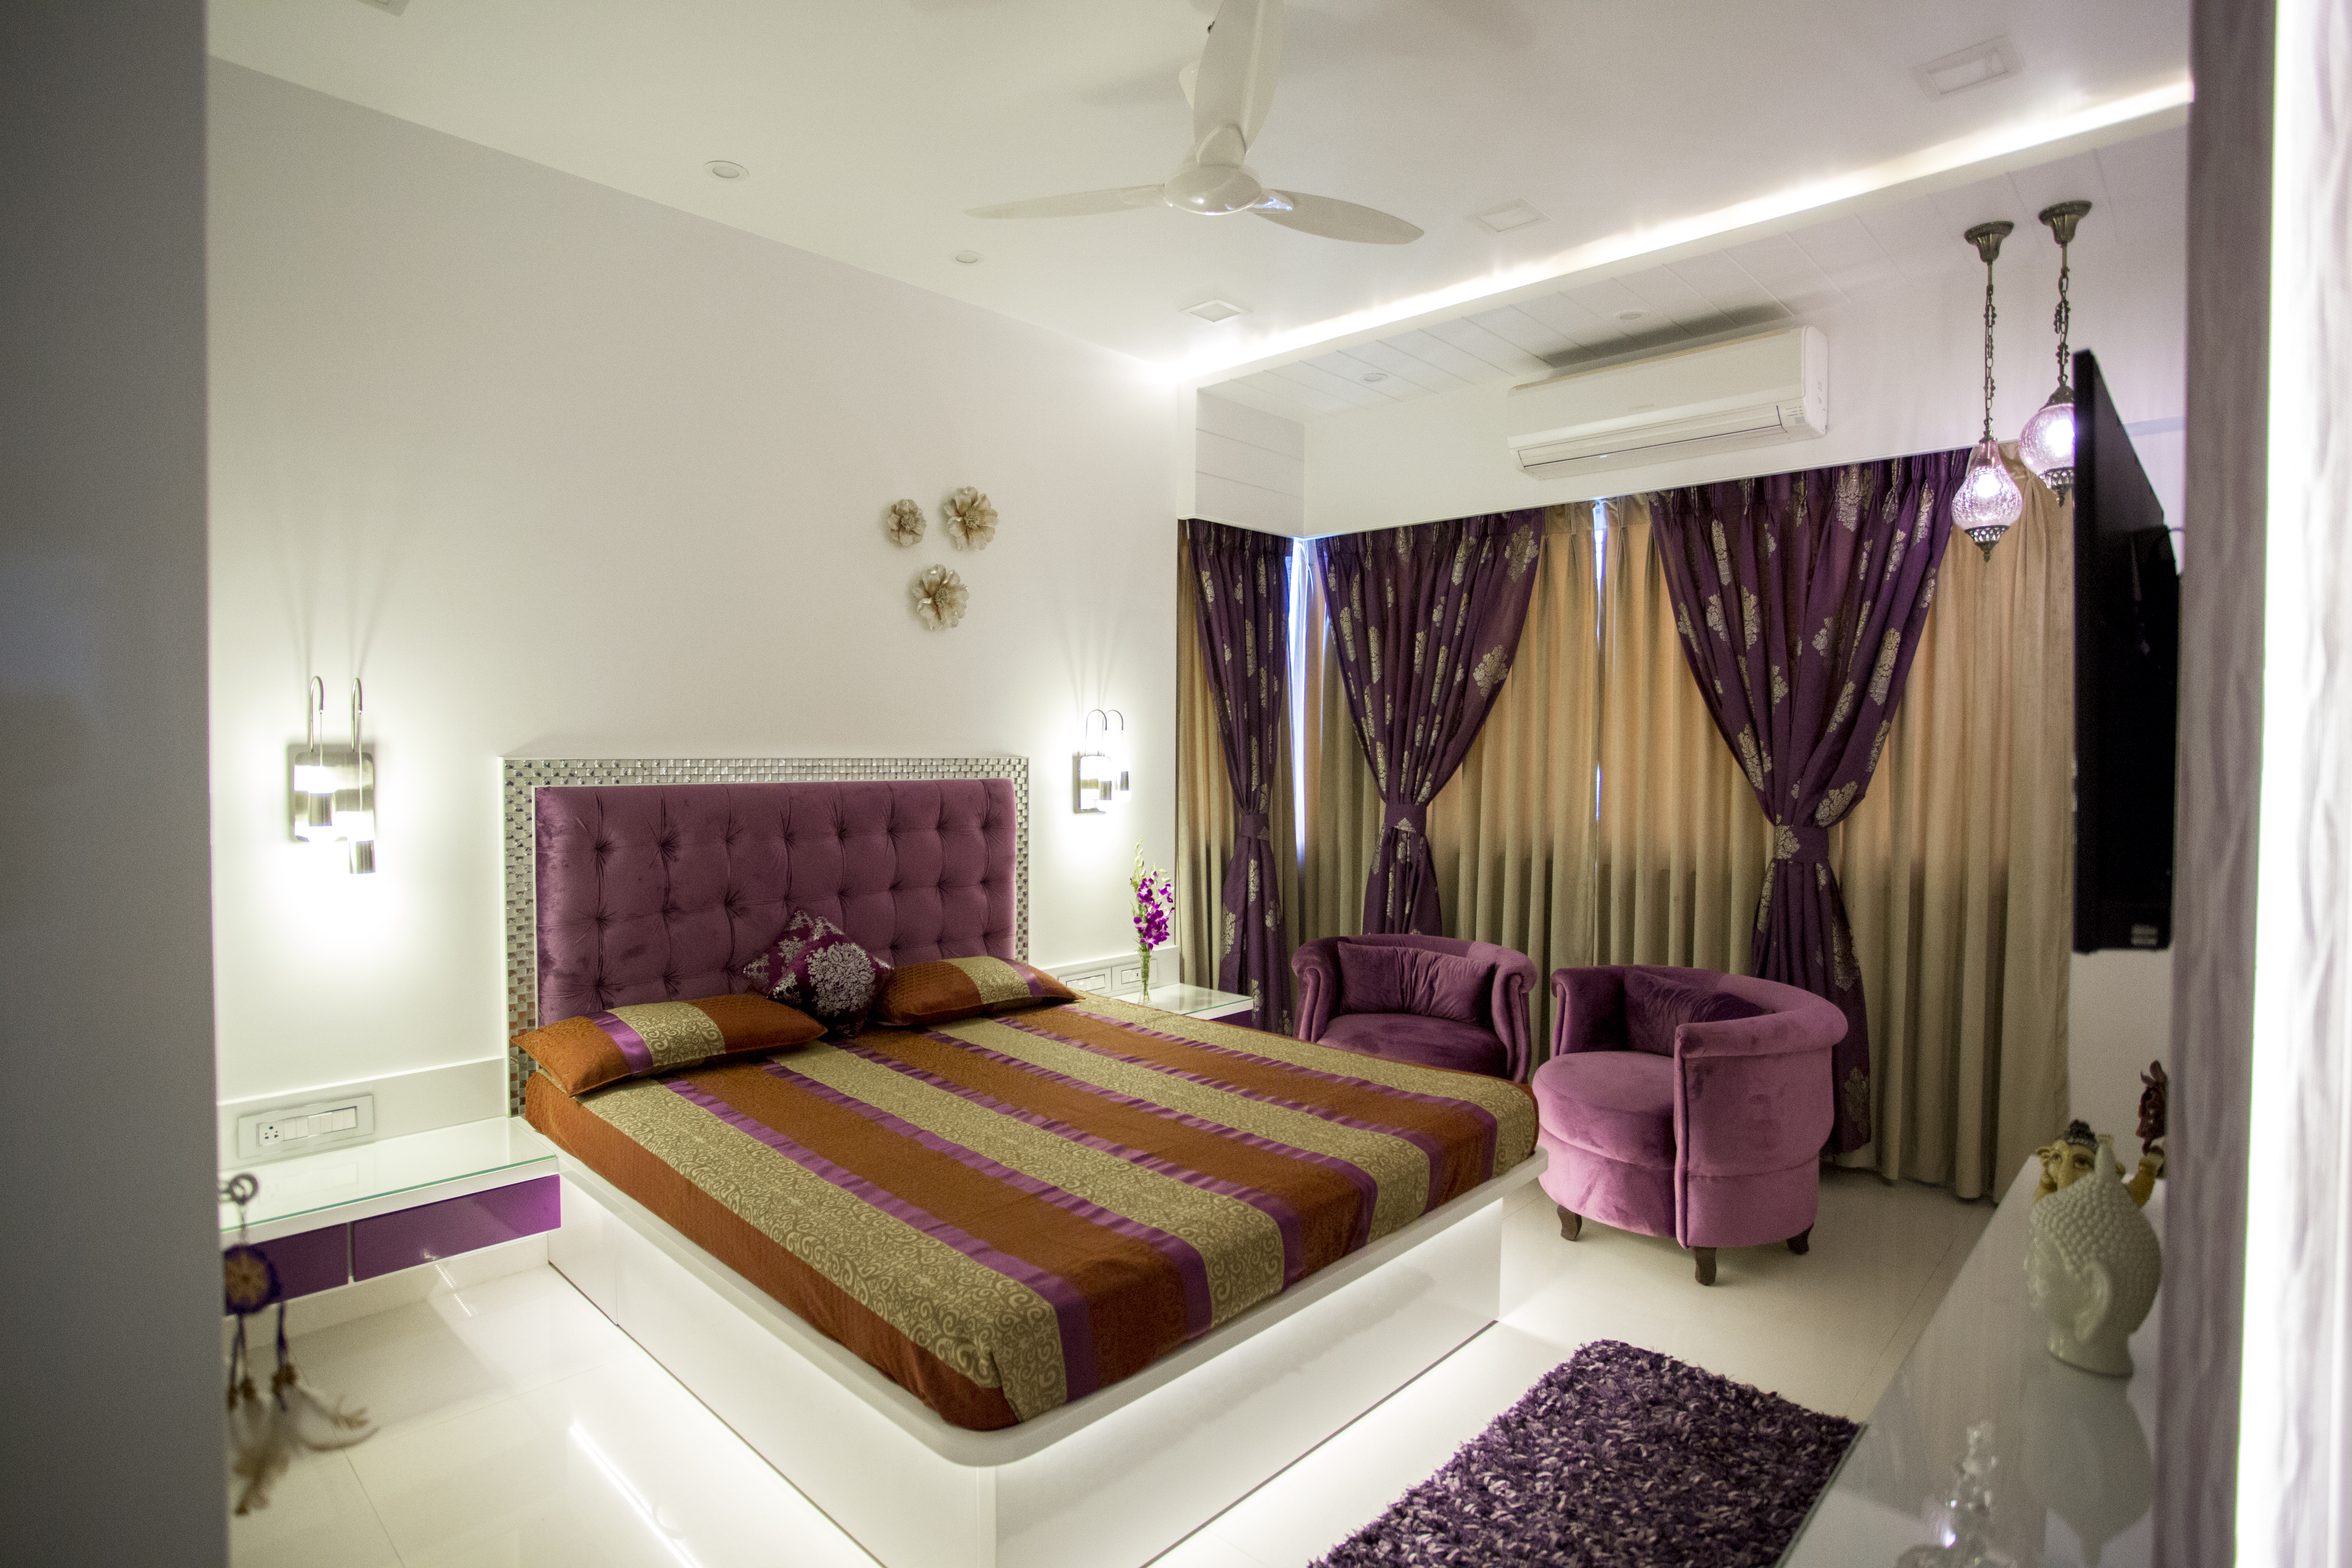 Residential Interior Design - Bed Room P1Pic3